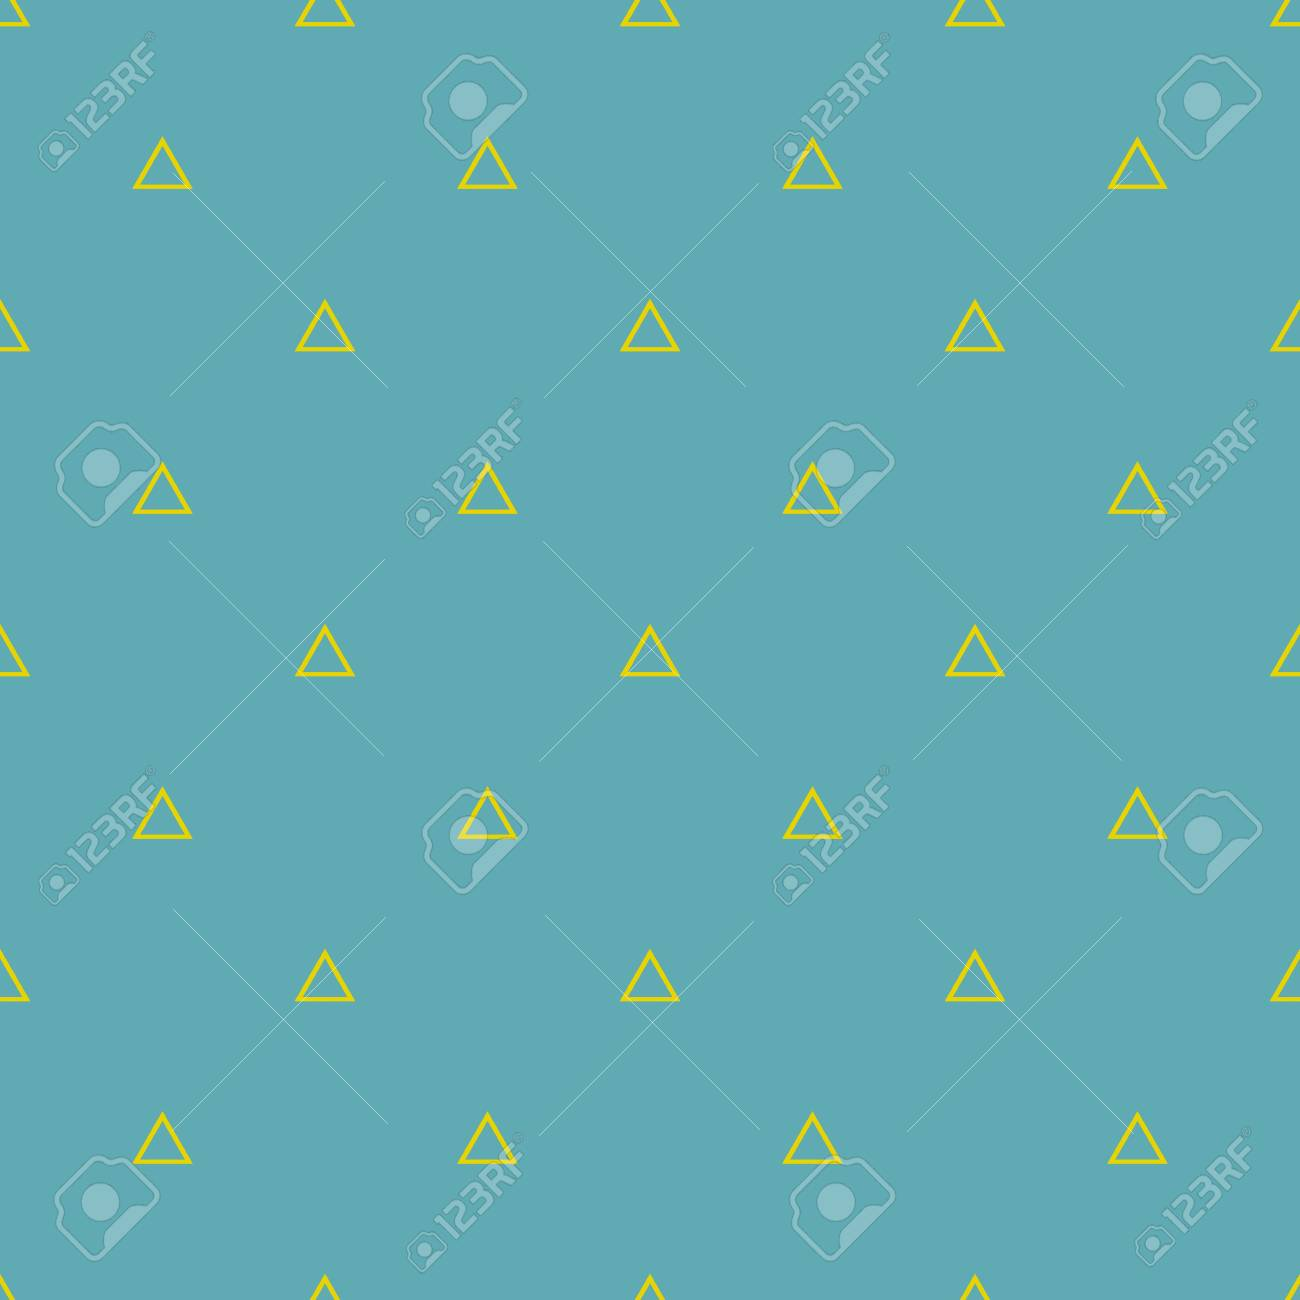 Tile vector pattern with yellow triangles on pastel mint green